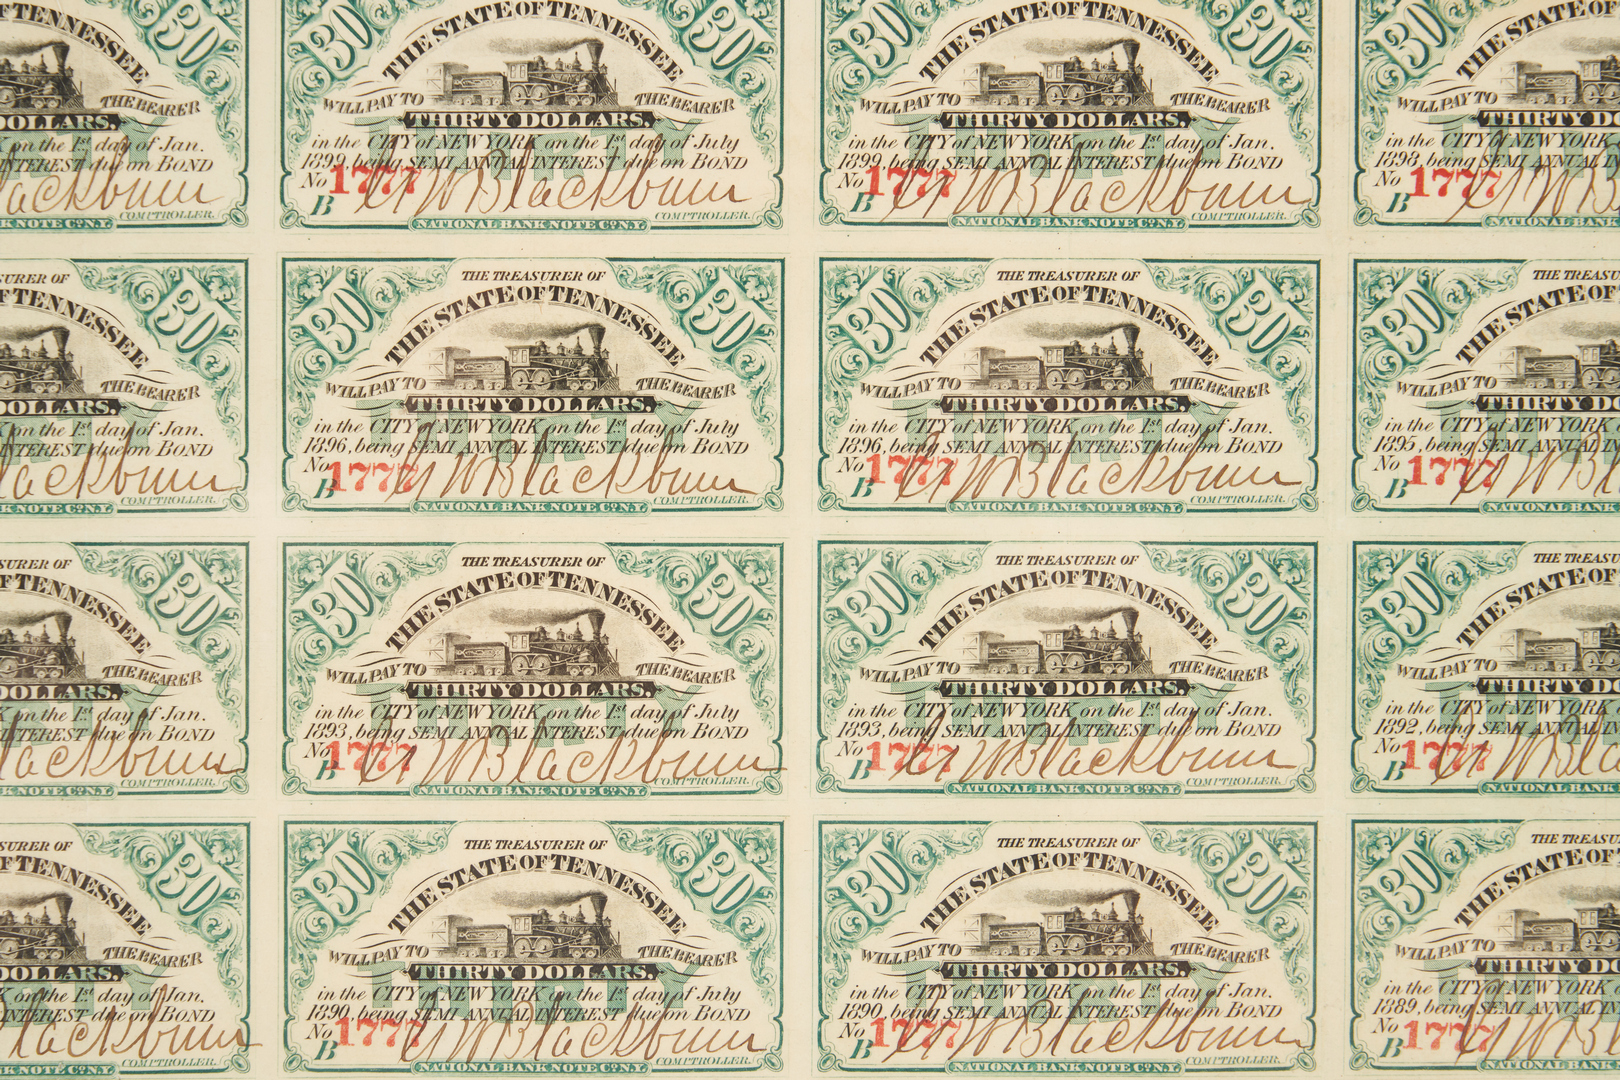 Lot 1064: 8 Obsolete Currency Notes, incl. TN $1000 Bond